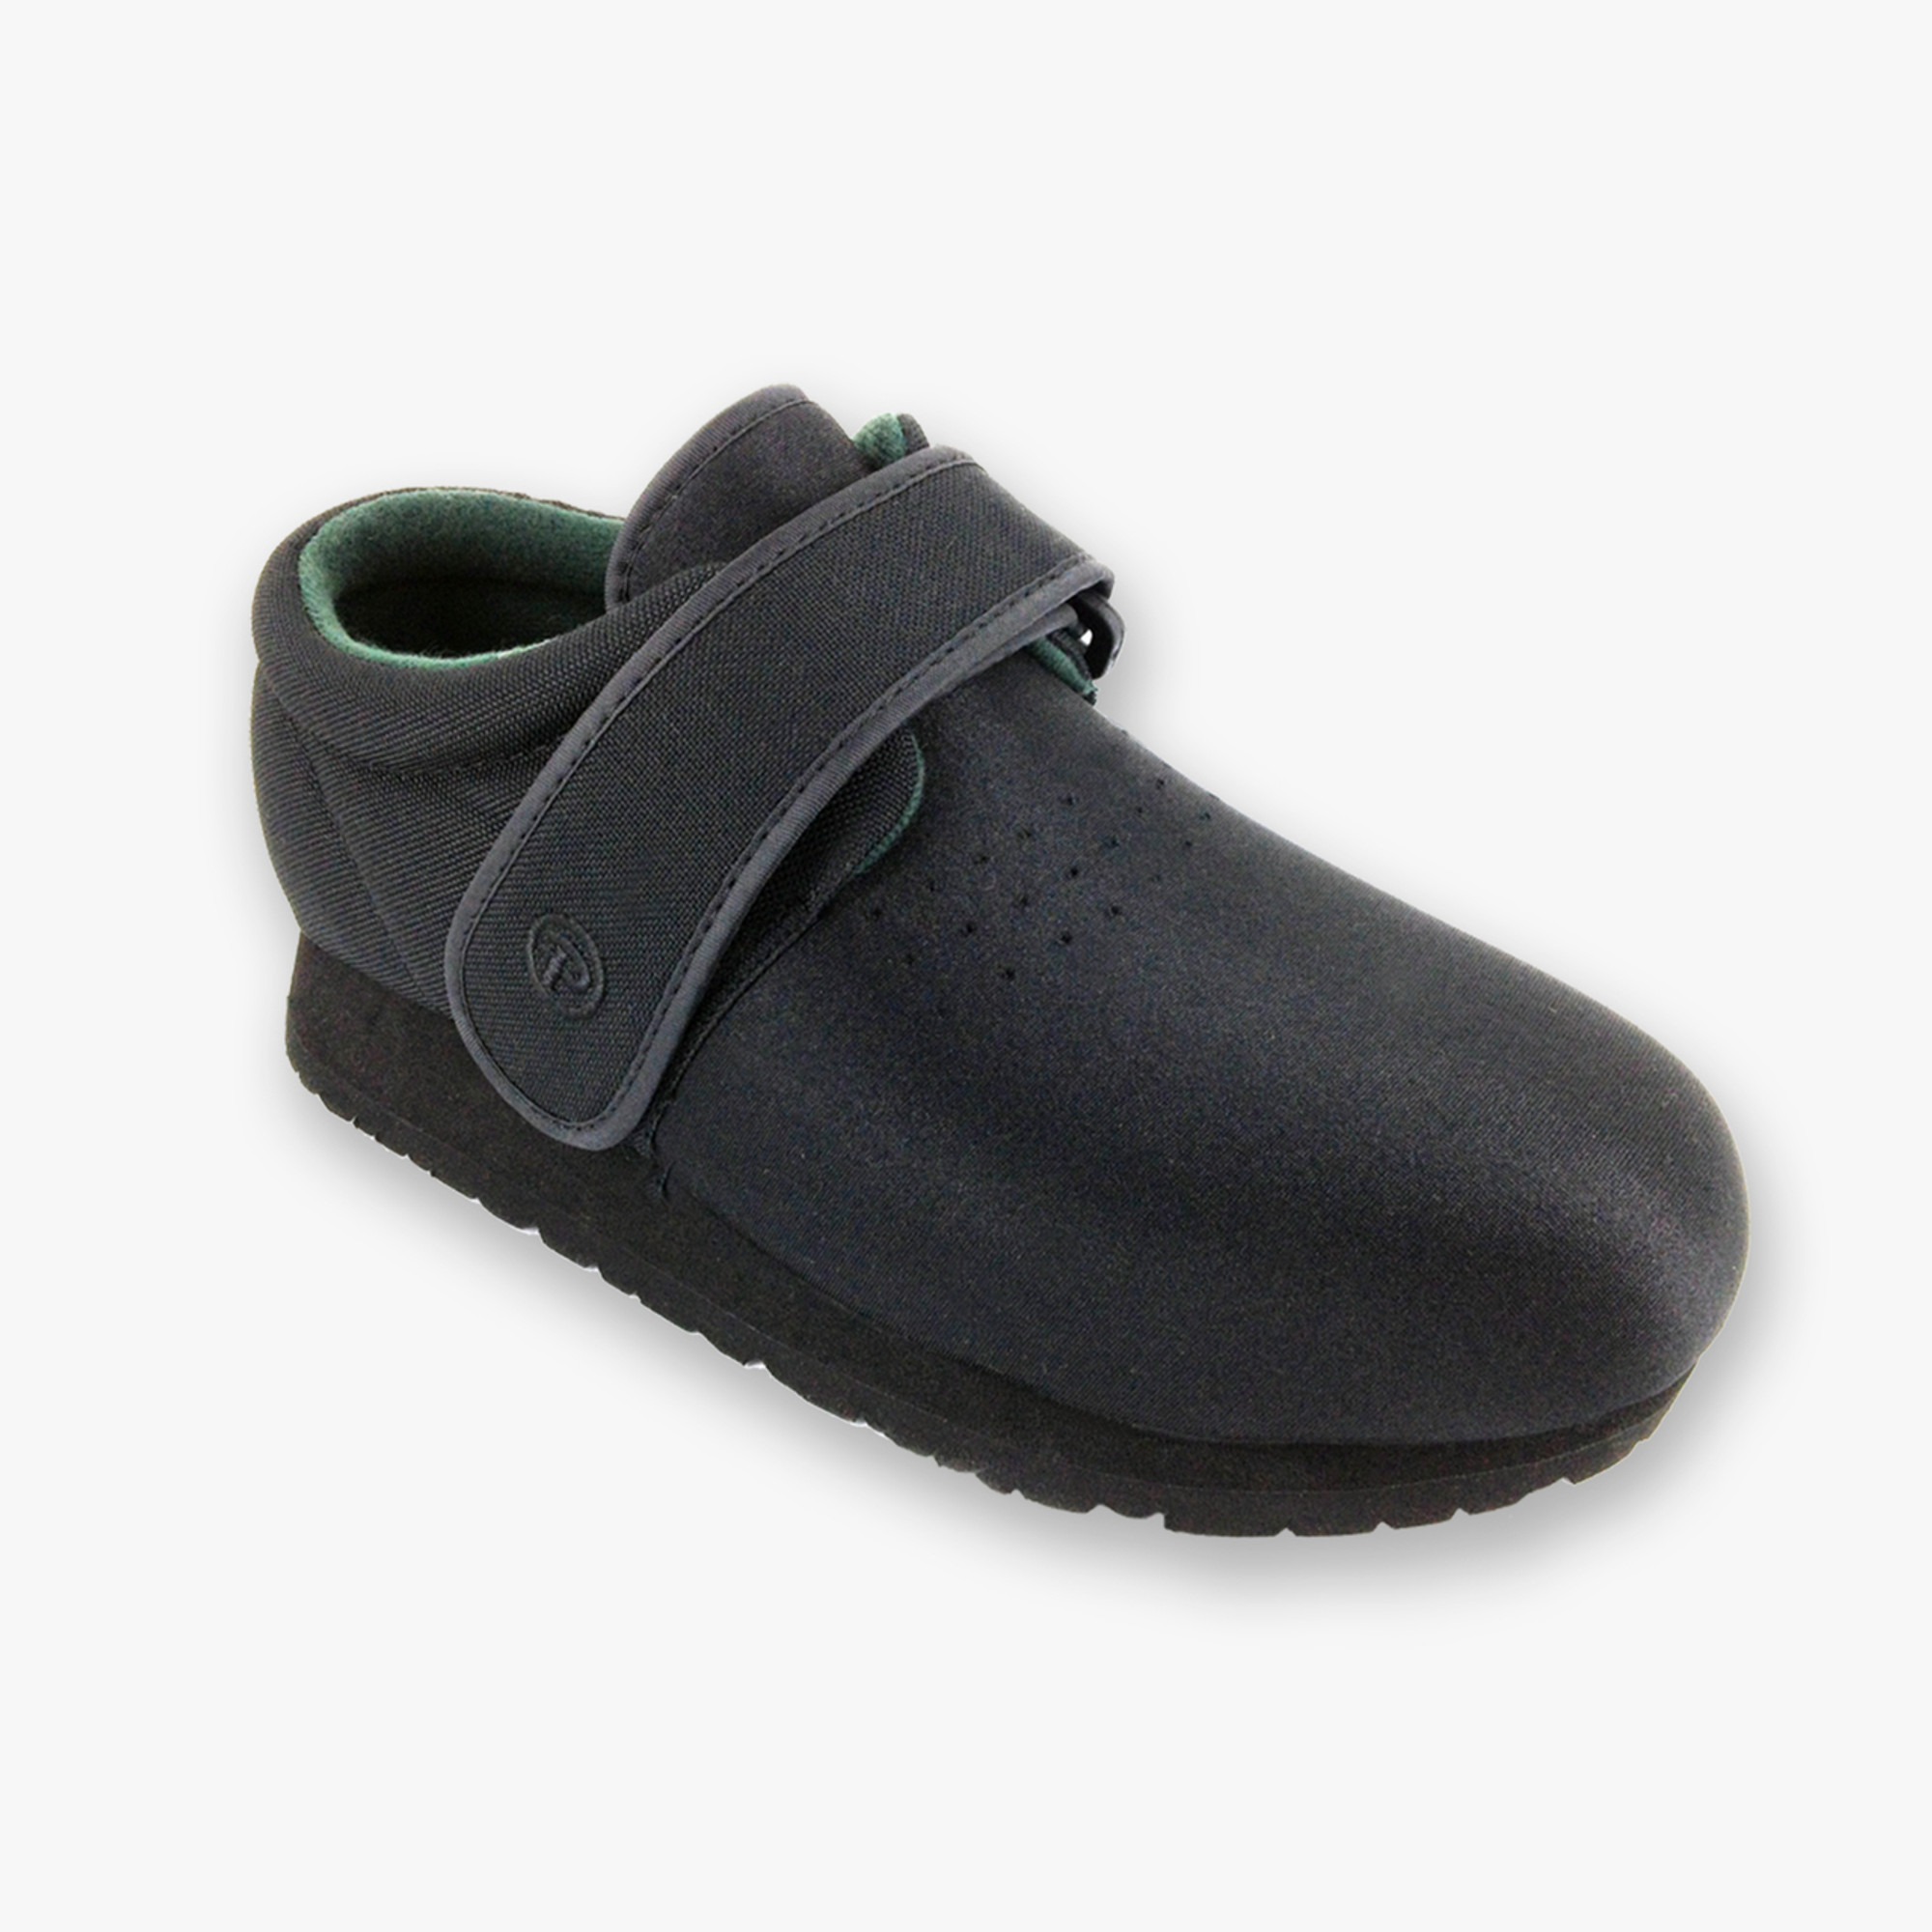 Pedors Shoes - Shoes For Swollen Feet | Orthopedic Shoes ...